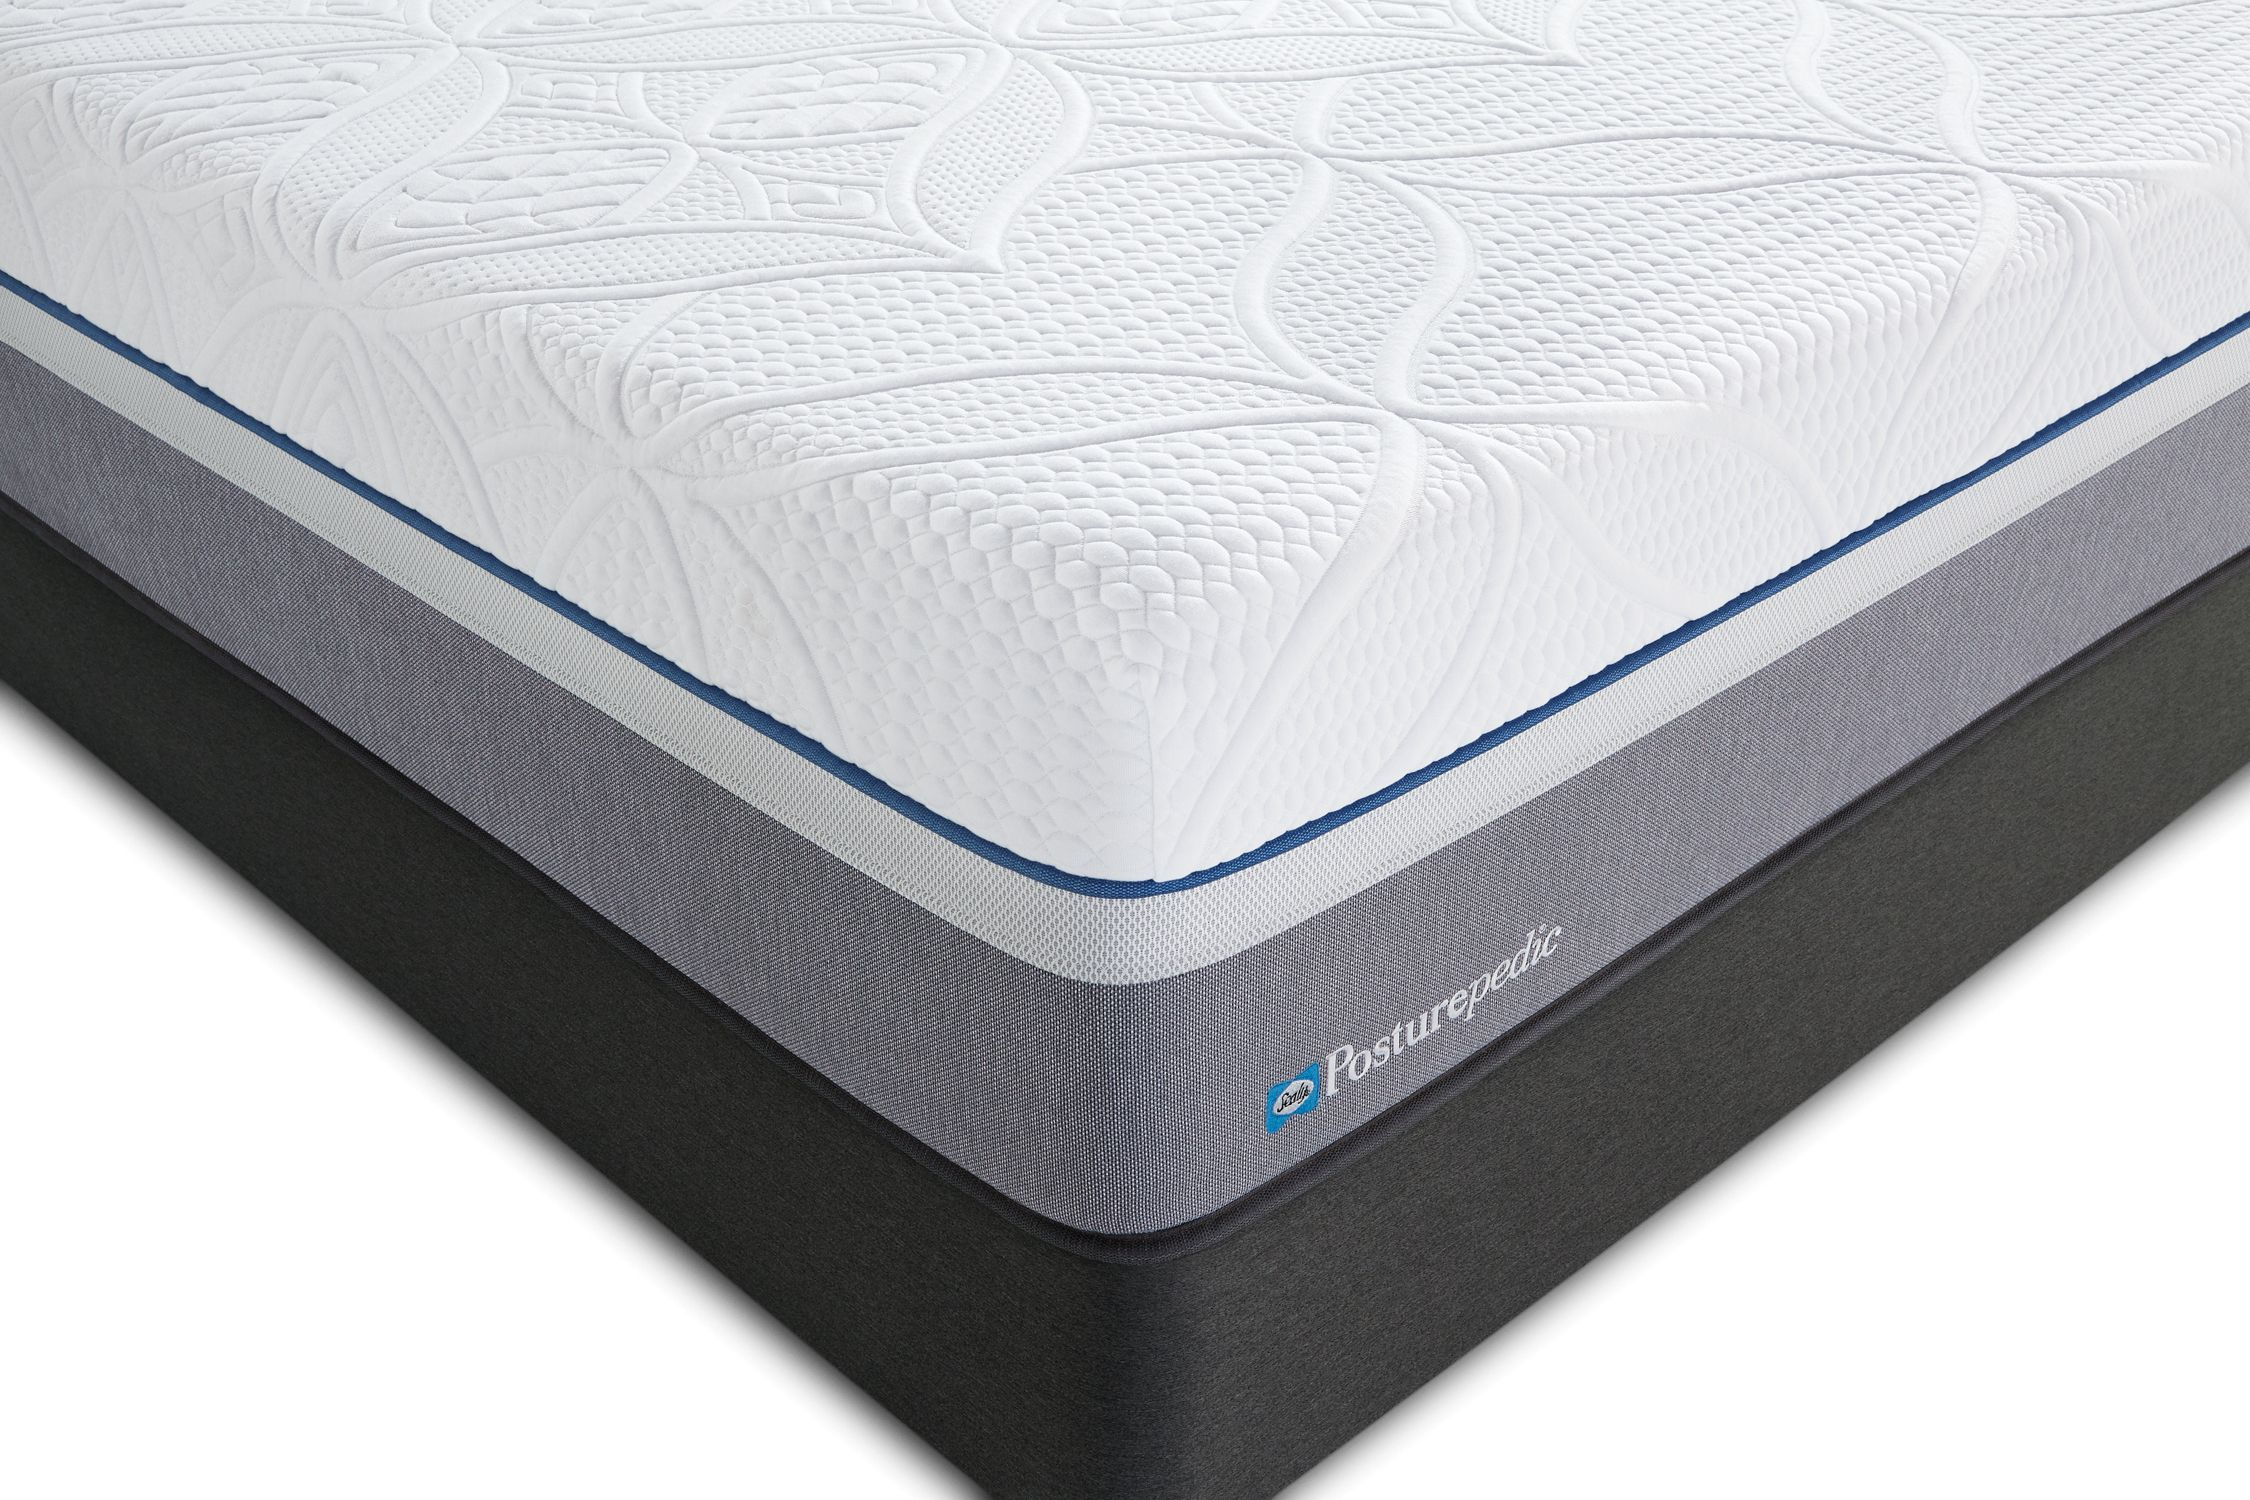 sealy posturepedic hybrid cobalt firm king mattress 2 home